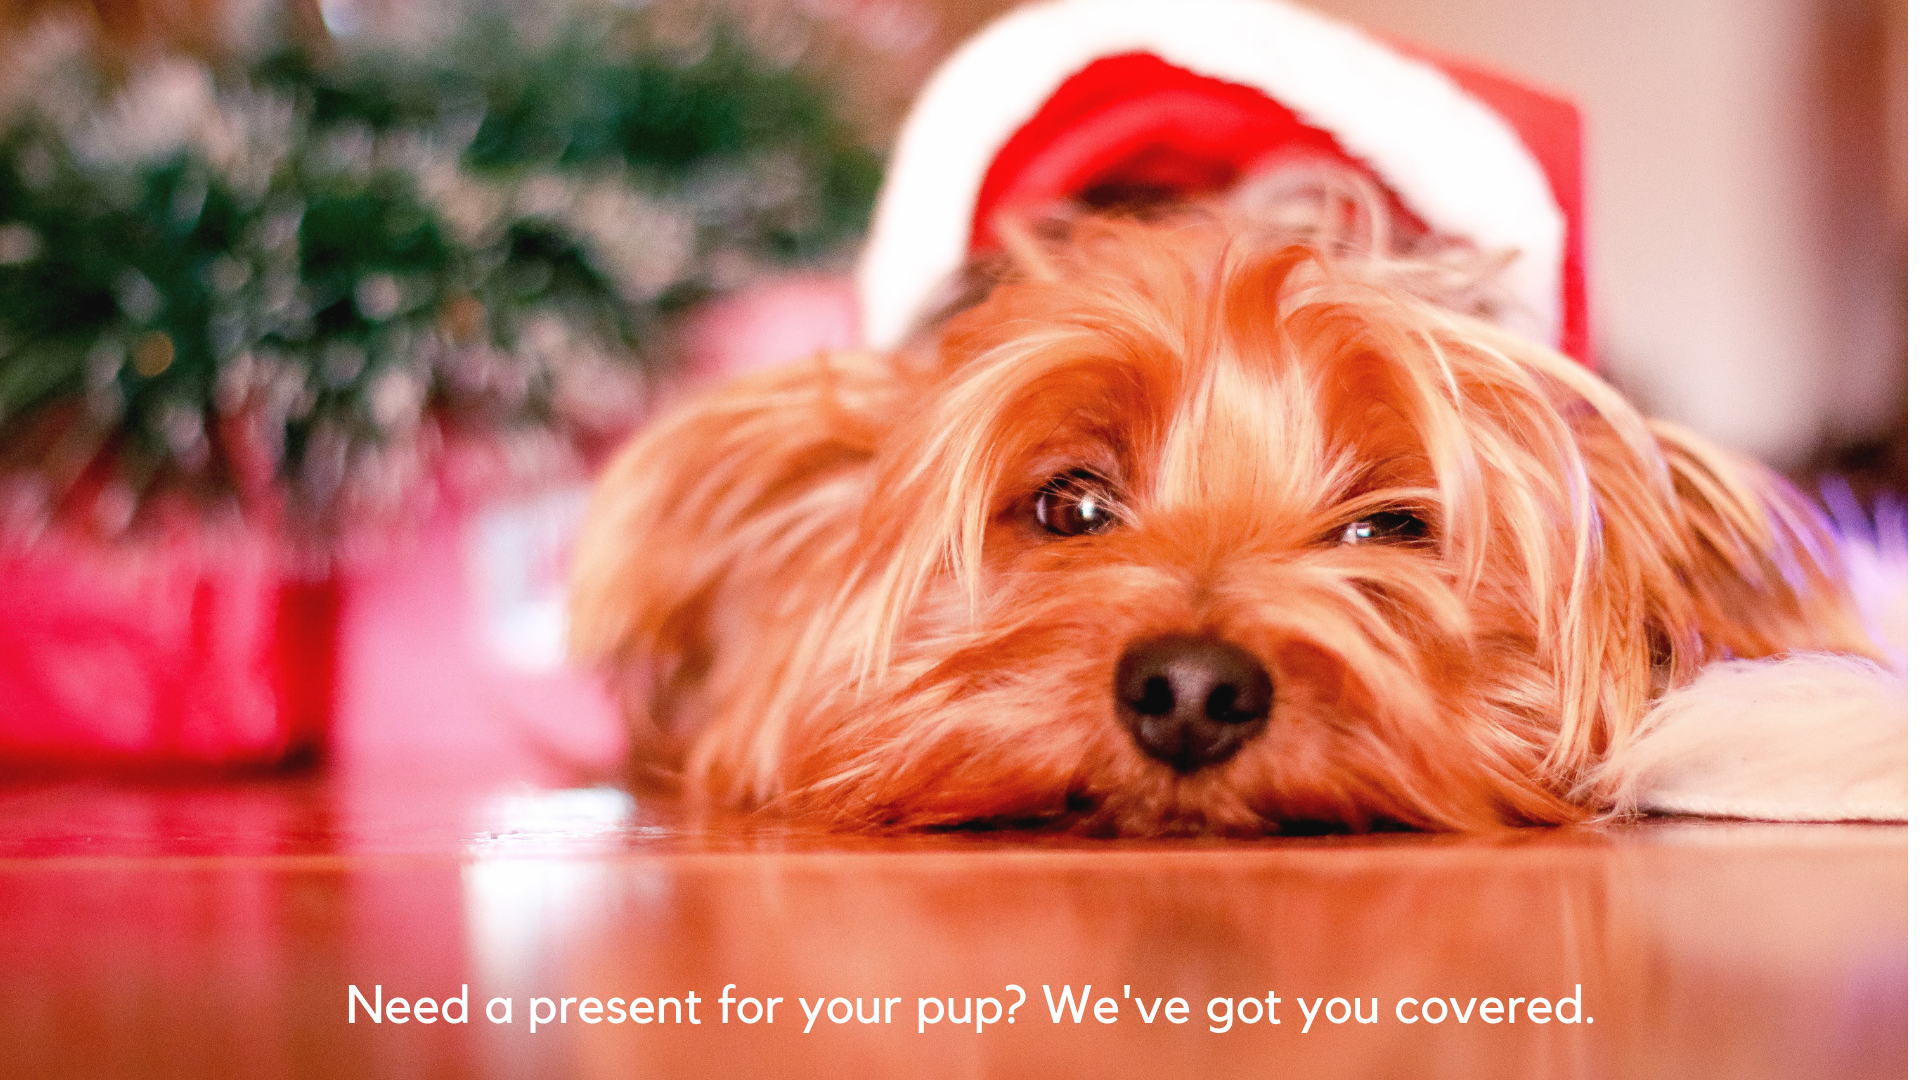 Need a present for your pup? We've got you covered.